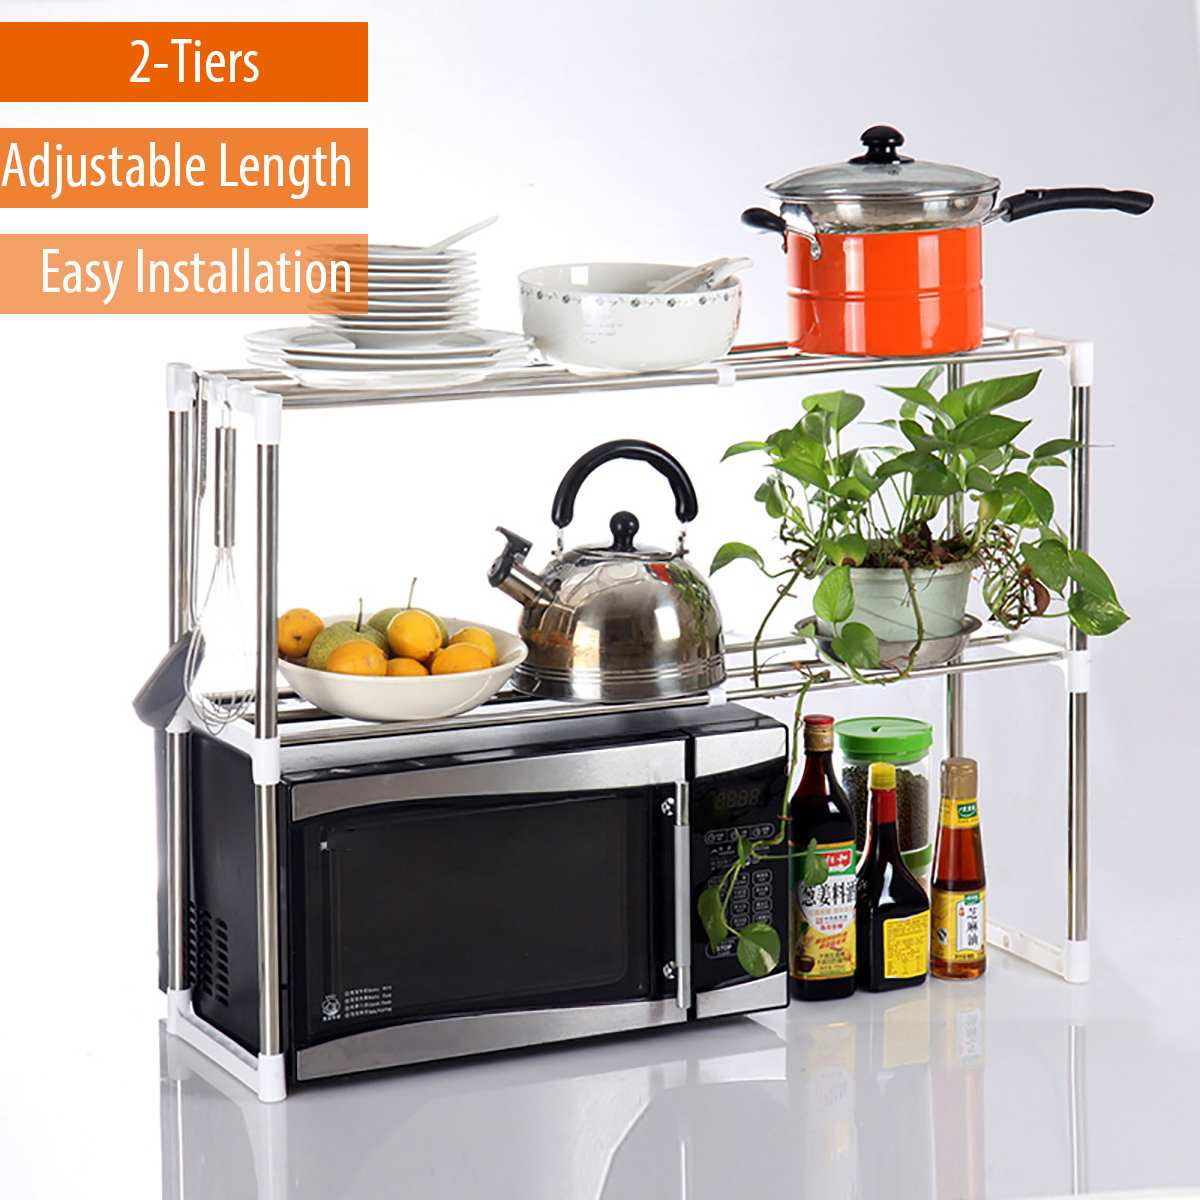 Stainless Steel Rack Kitchen Microwave Oven Storage Holder Shelf Standing Adjustable Multifunctional Home Bathroom Storage Rack